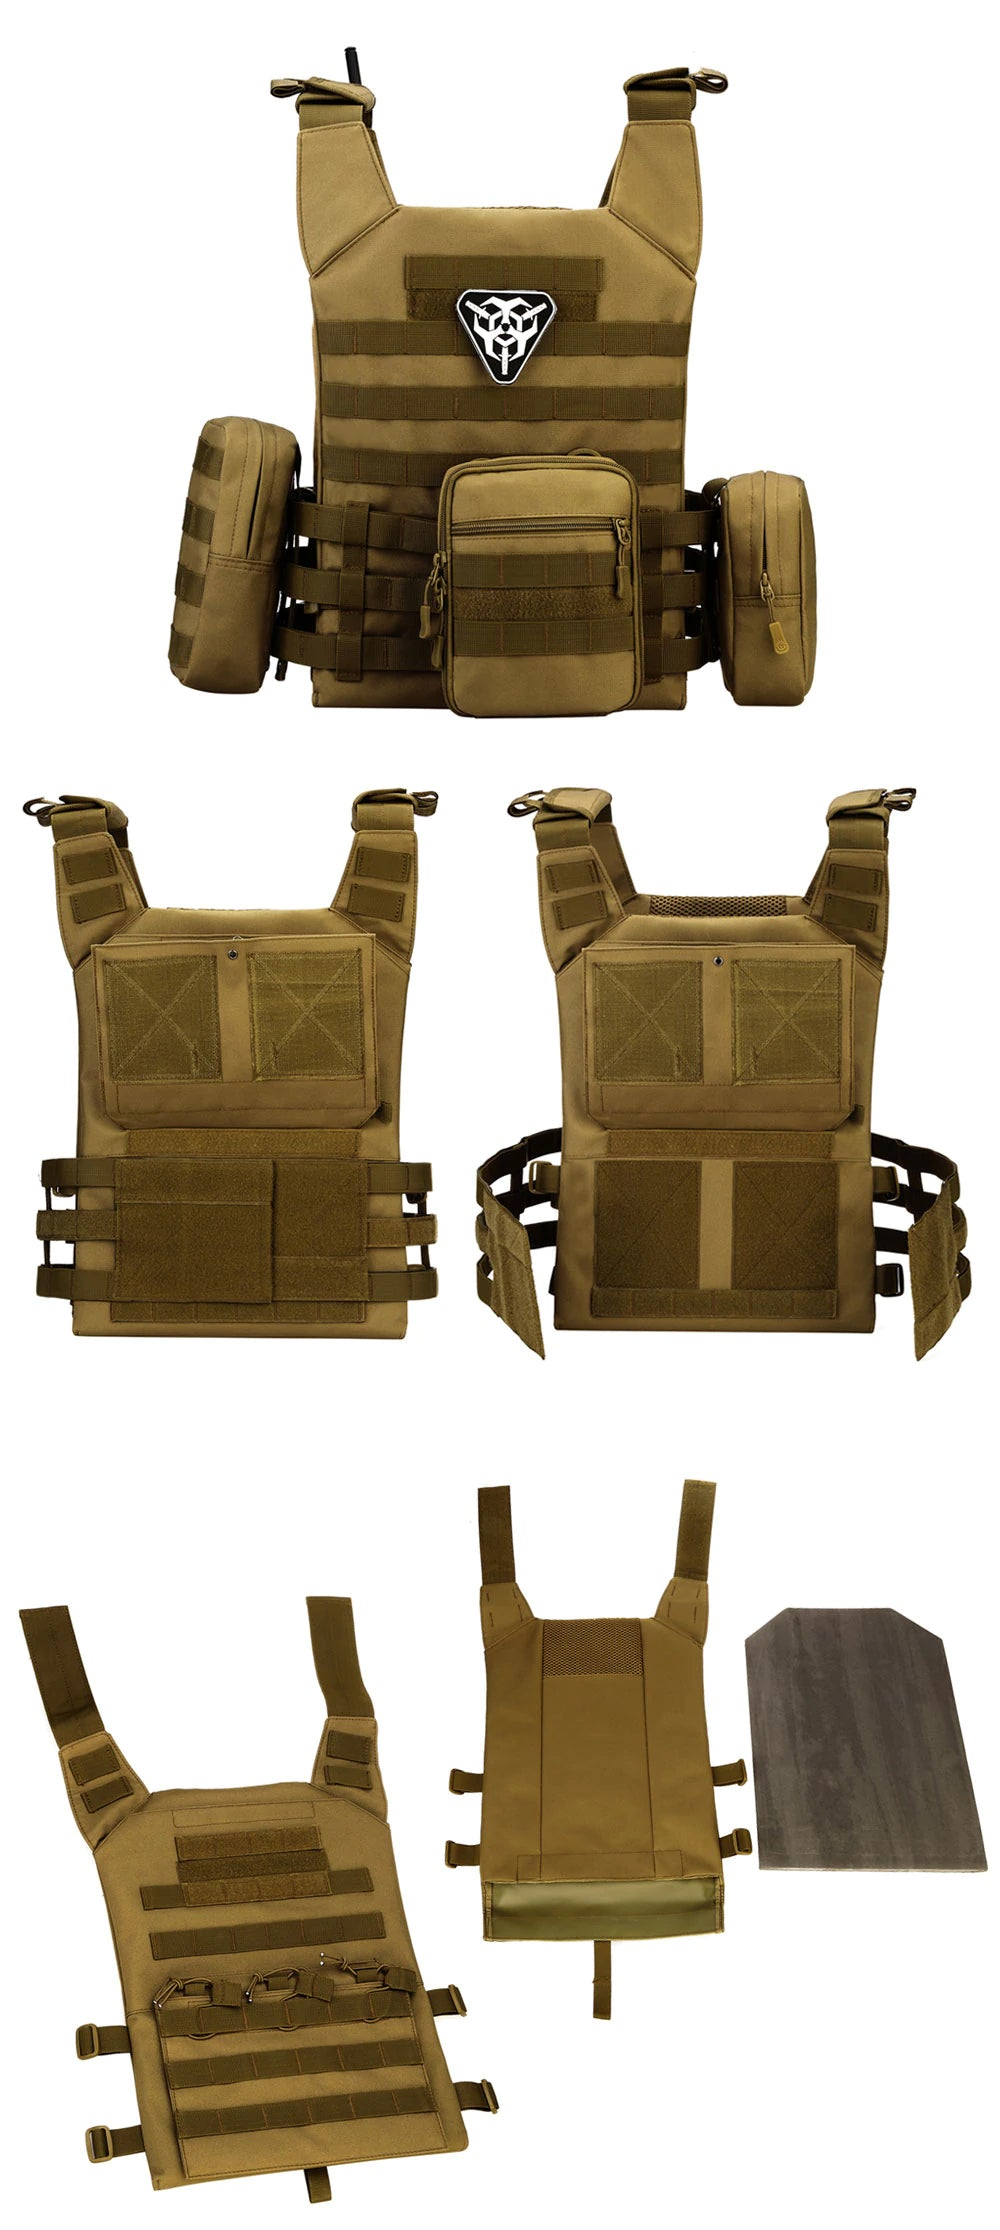 Tactical MOLLE Vest Nylon Military Tactical Combat Games Hunting Airsoft Paintball Army Shooting Vest Adjustable Tactical Vest - 6 Colors